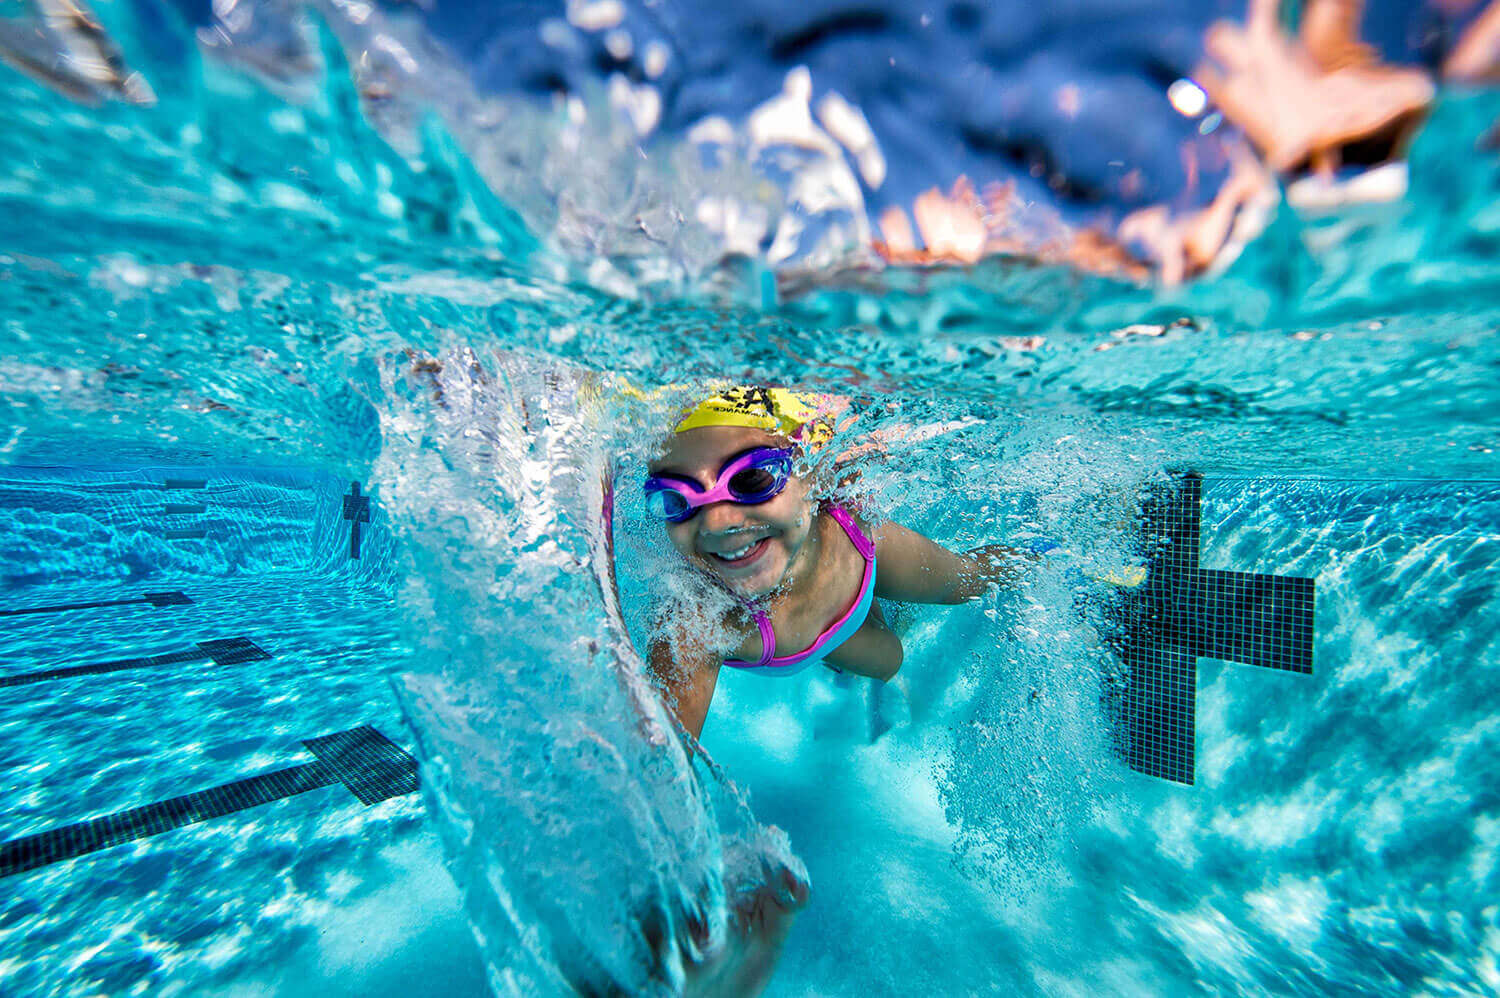 happy smiling child with goggles swim cap and swim gear in pool underwater with lots of bubbles